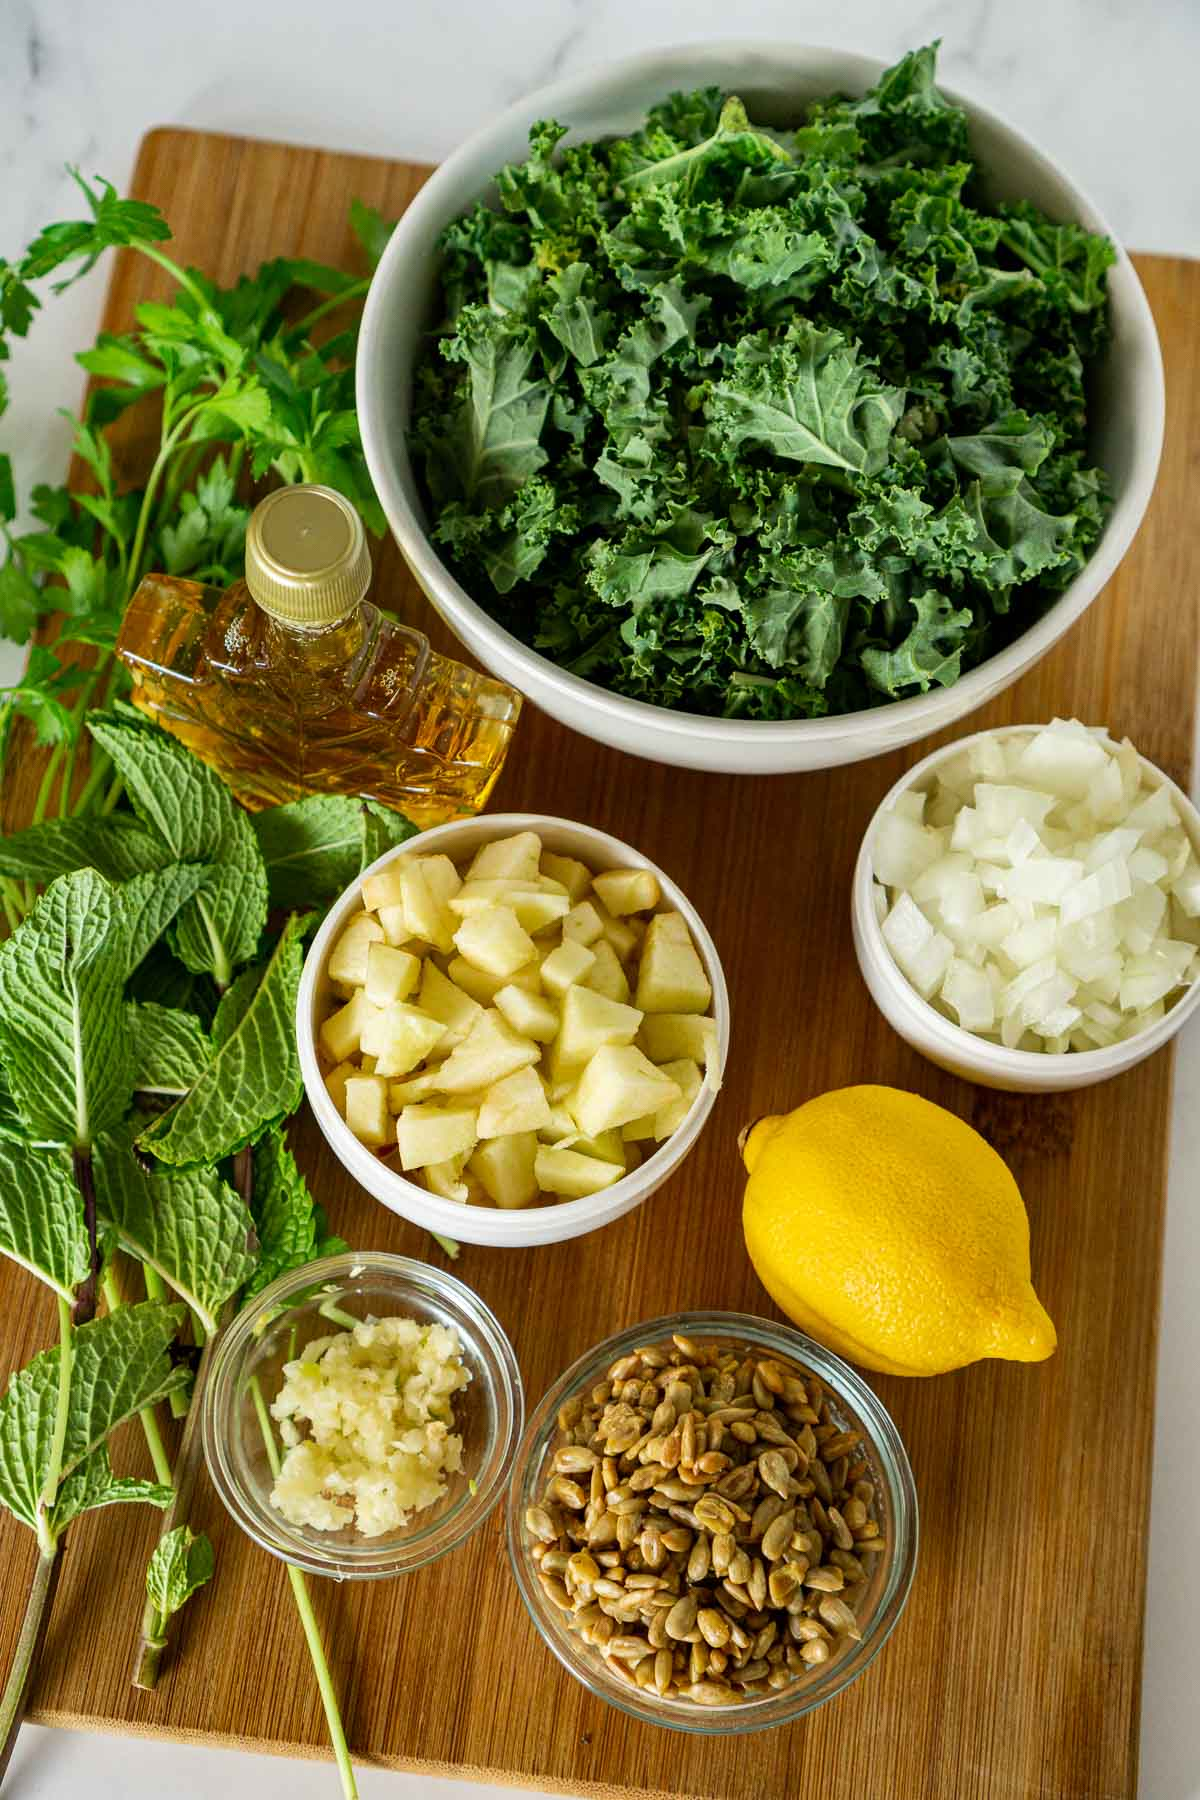 Ingredients to add to rice salad: kale, apples, sunflower seeds, onion, garlic, herbs, lemon juice, and maple syrup.